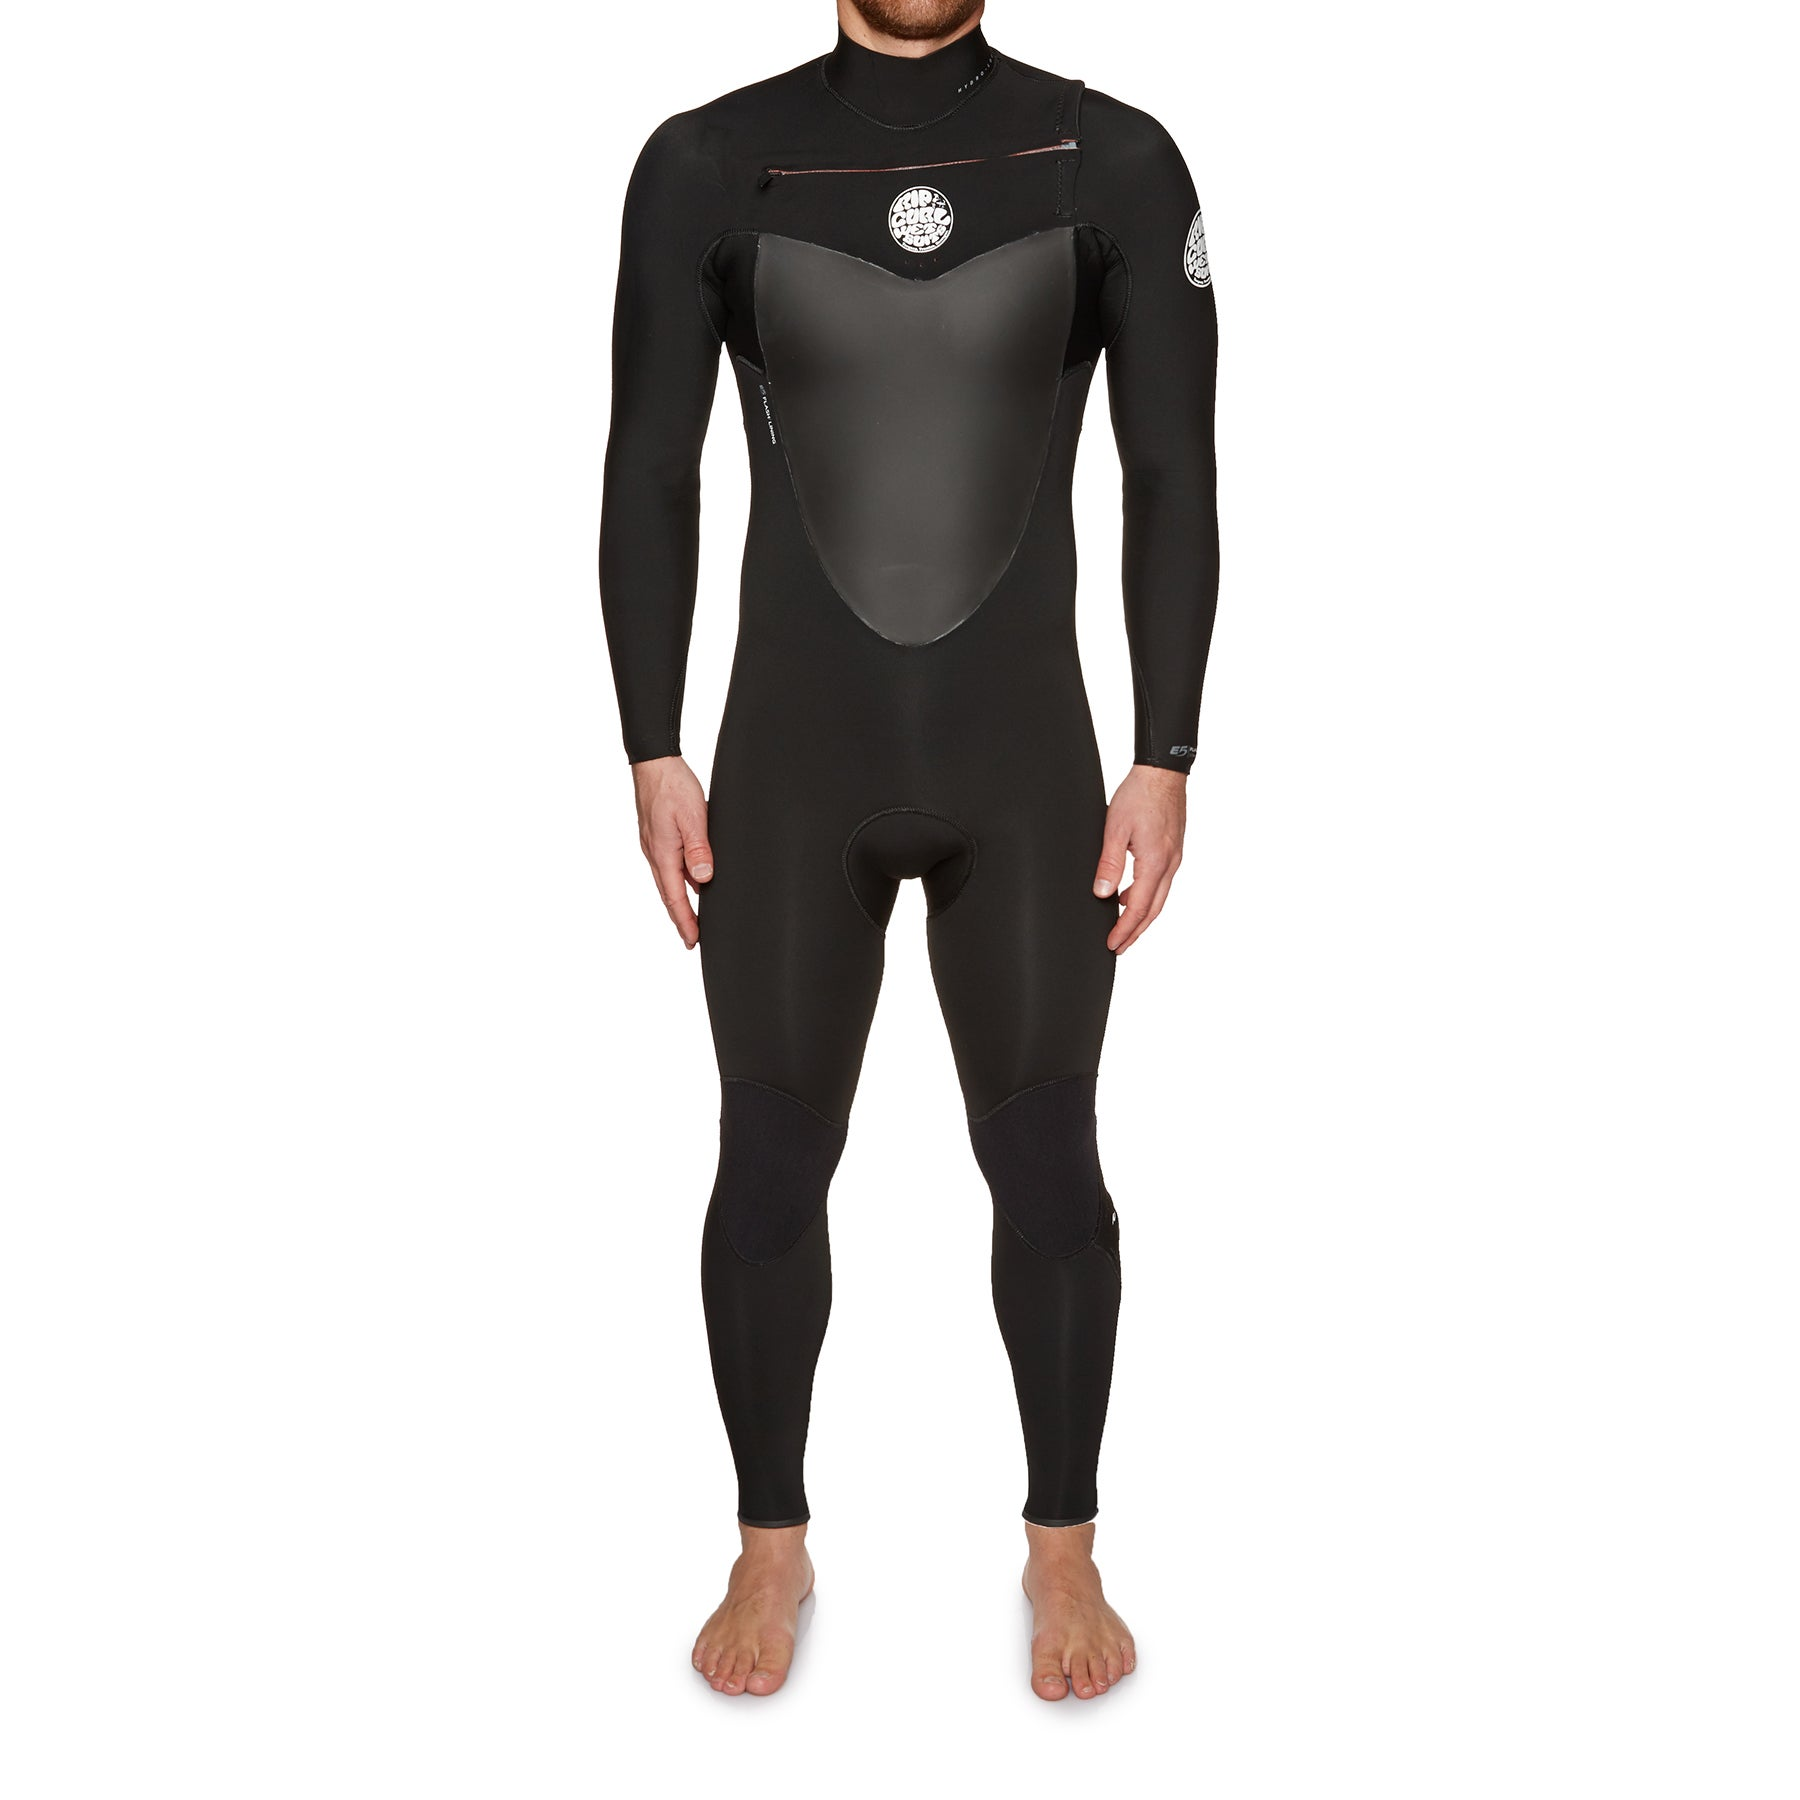 Rip Curl Flashbomb 3/2mm Chest Zip Wetsuit - Black